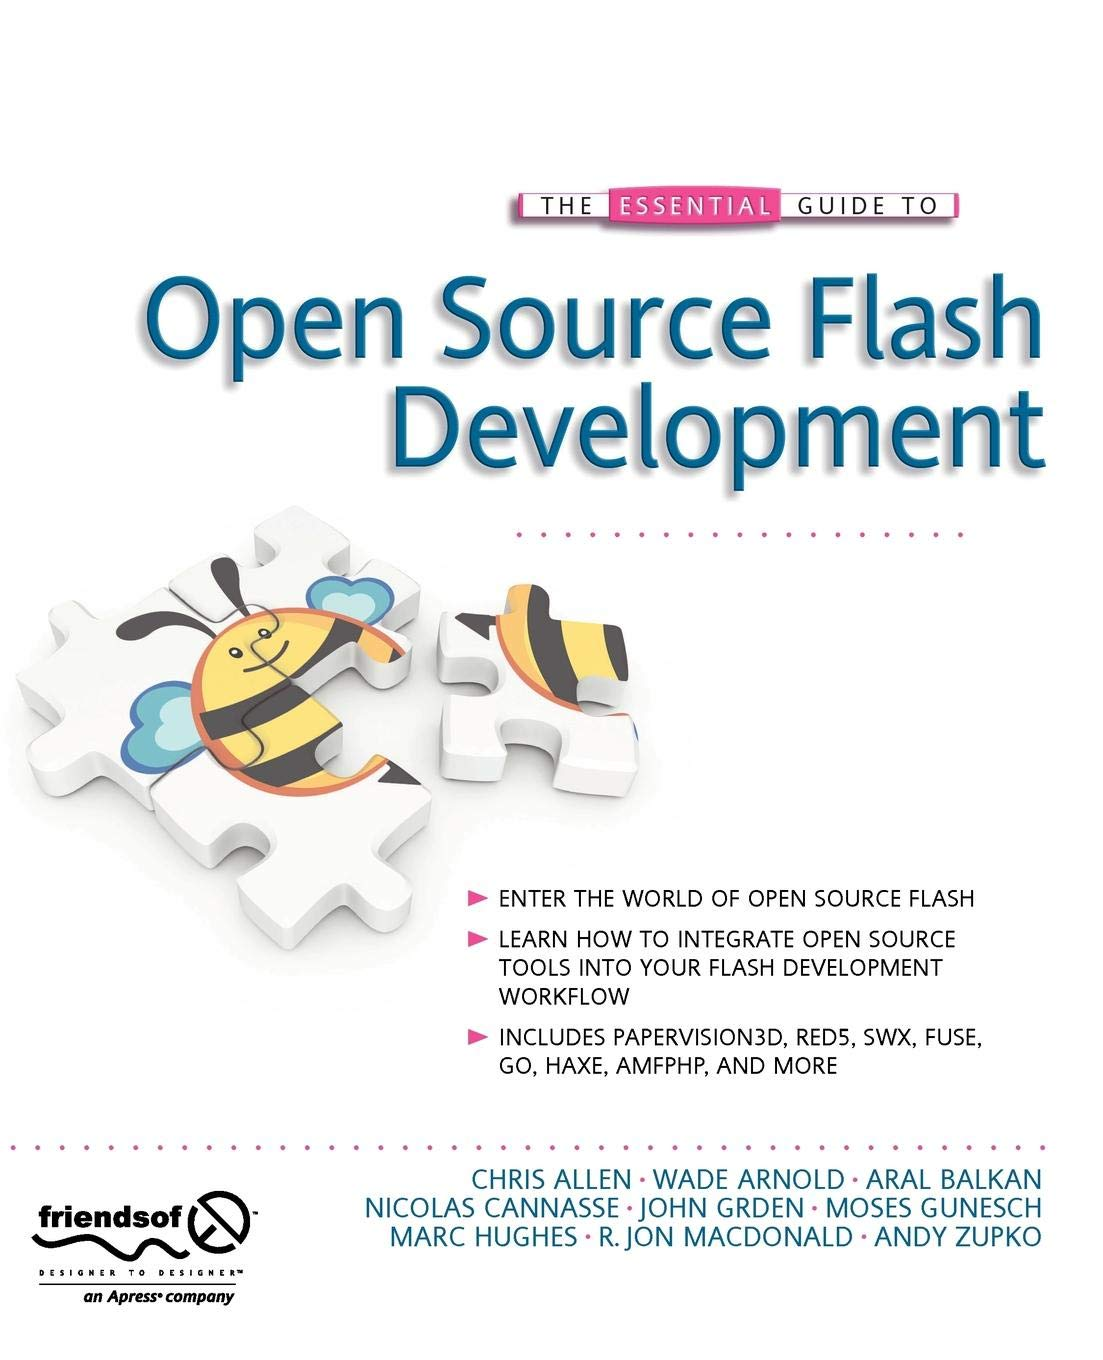 The Essential Guide to Open Source Flash Development: Chris Allen